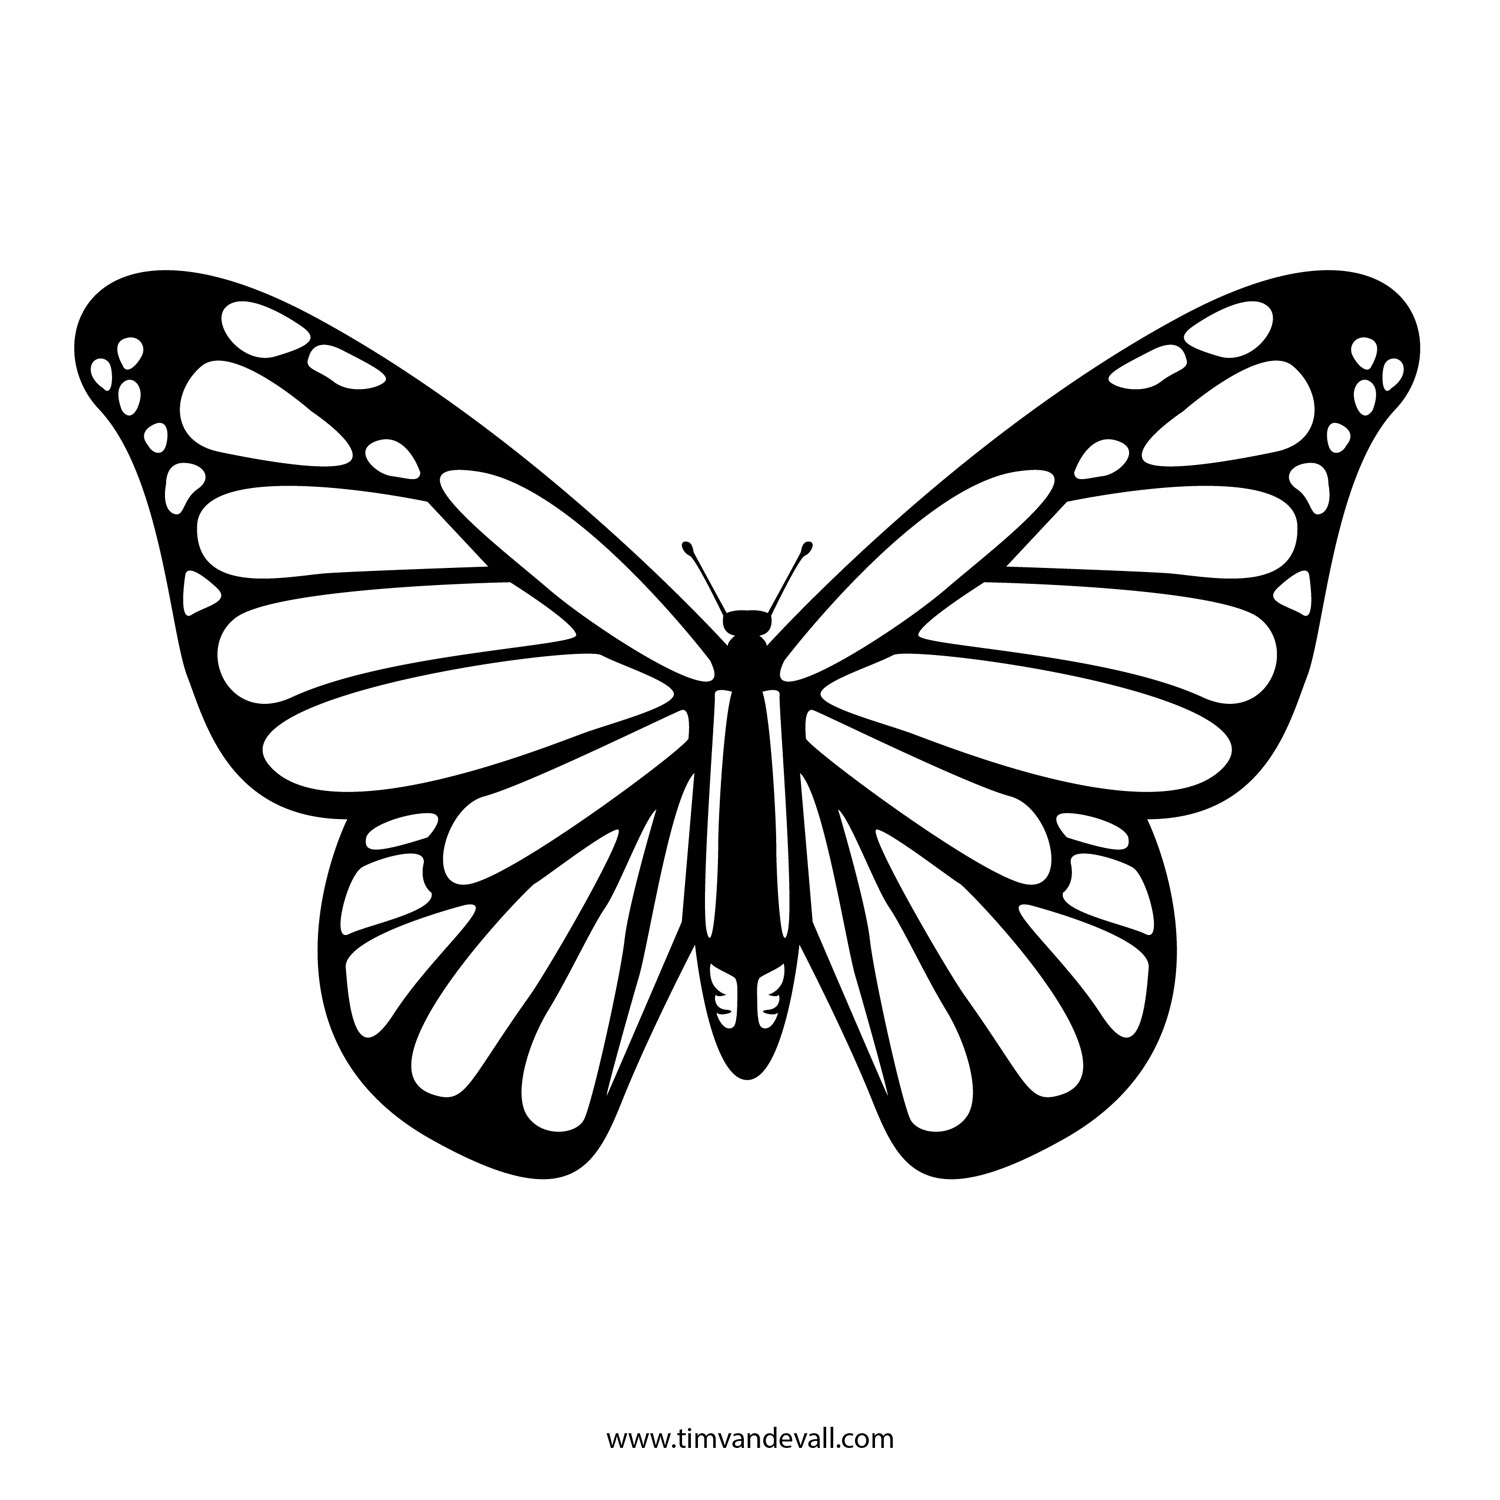 Free Butterfly Stencil   Monarch Butterfly Outline And Silhouette - Free Printable Butterfly